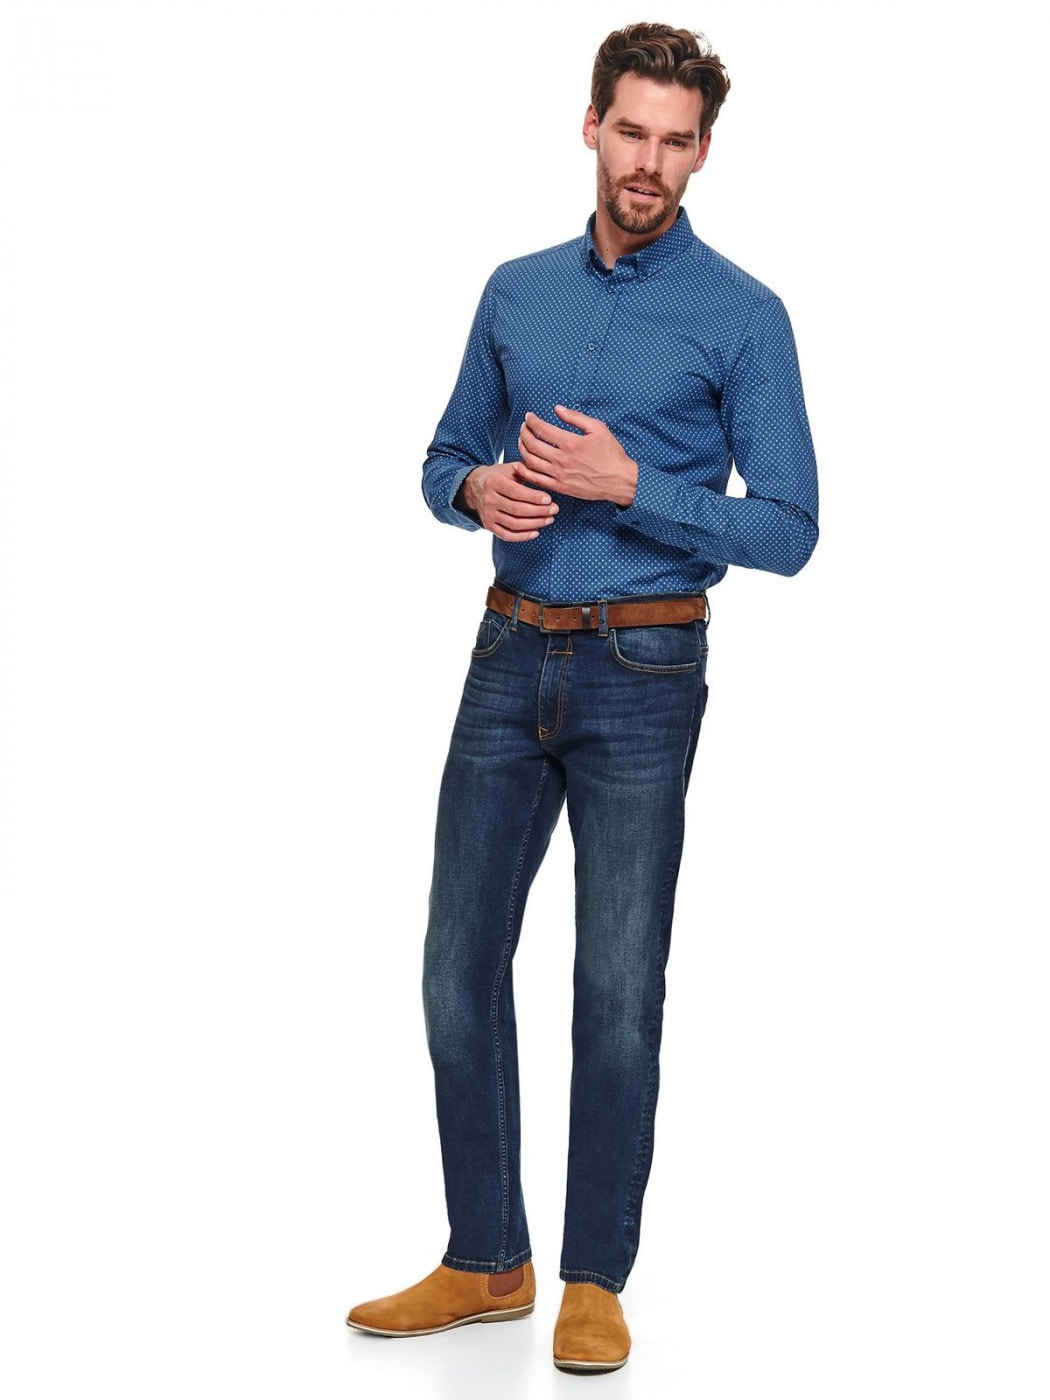 Men's jeans Top Secret Skinny jeans